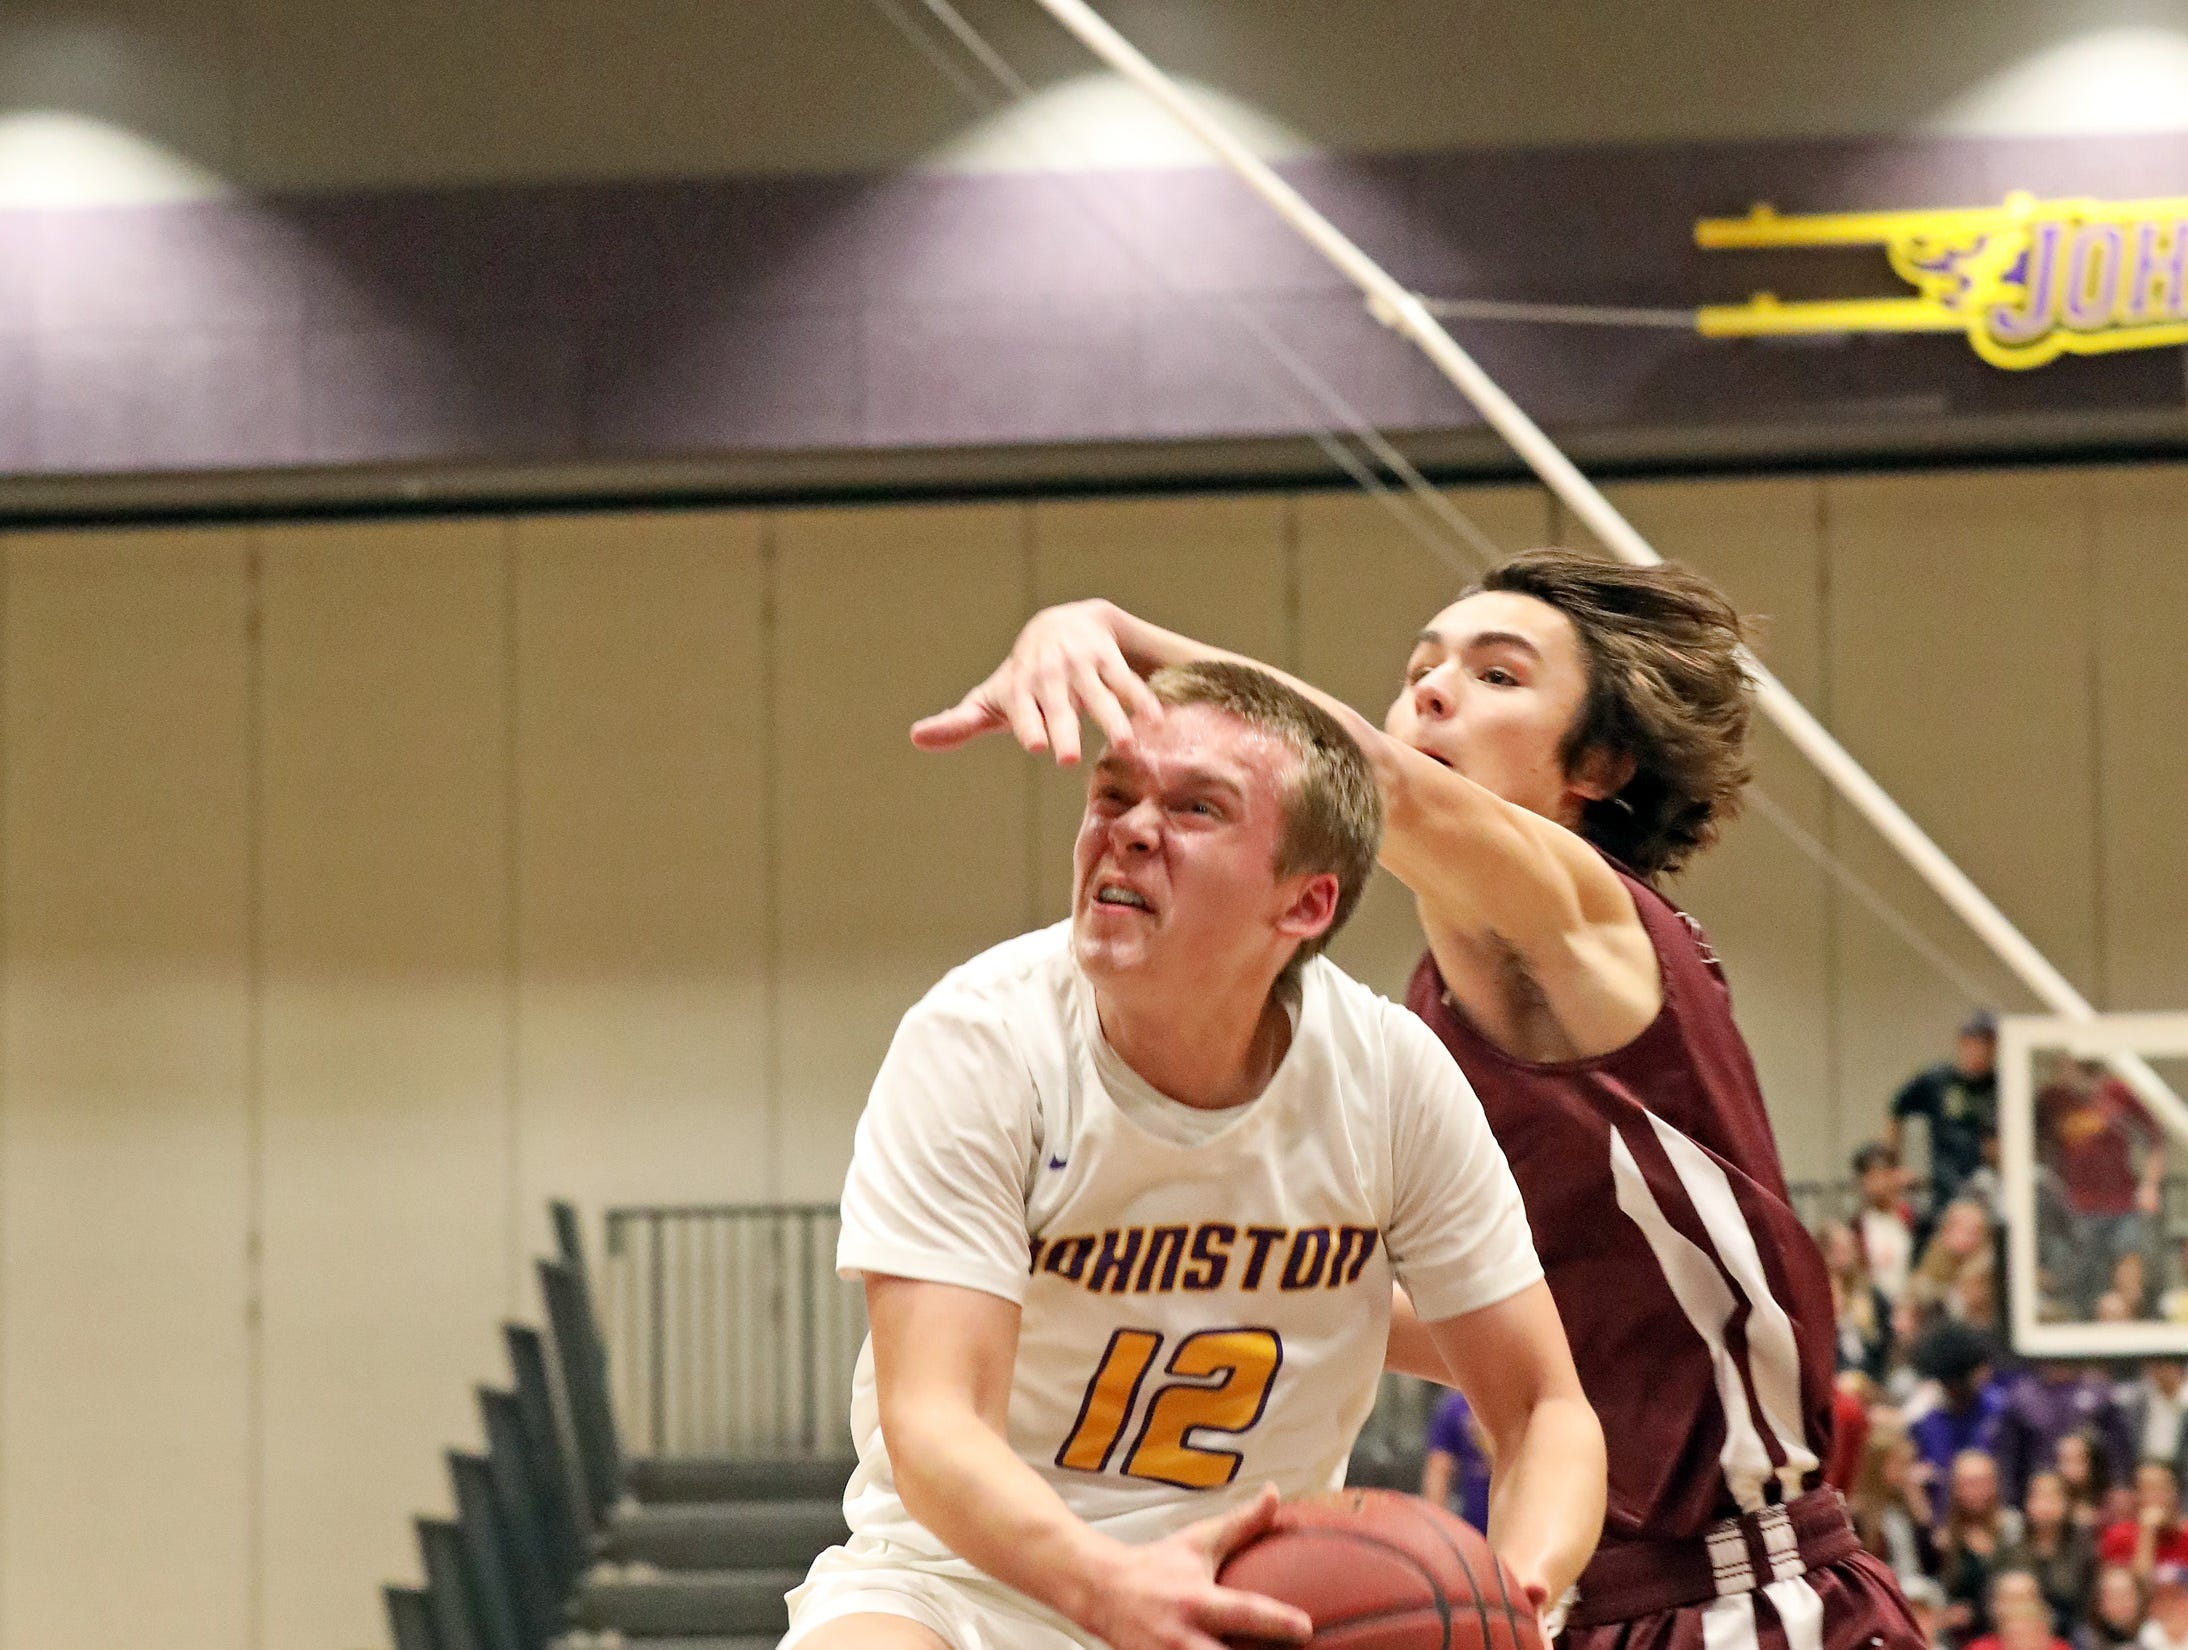 Johnston freshman Jacob Runyan drives against the tough defense as the Ankeny Hawks compete against the Johnston Dragons in high school basketball on Friday, Dec. 21, 2018 at Johnston High School.